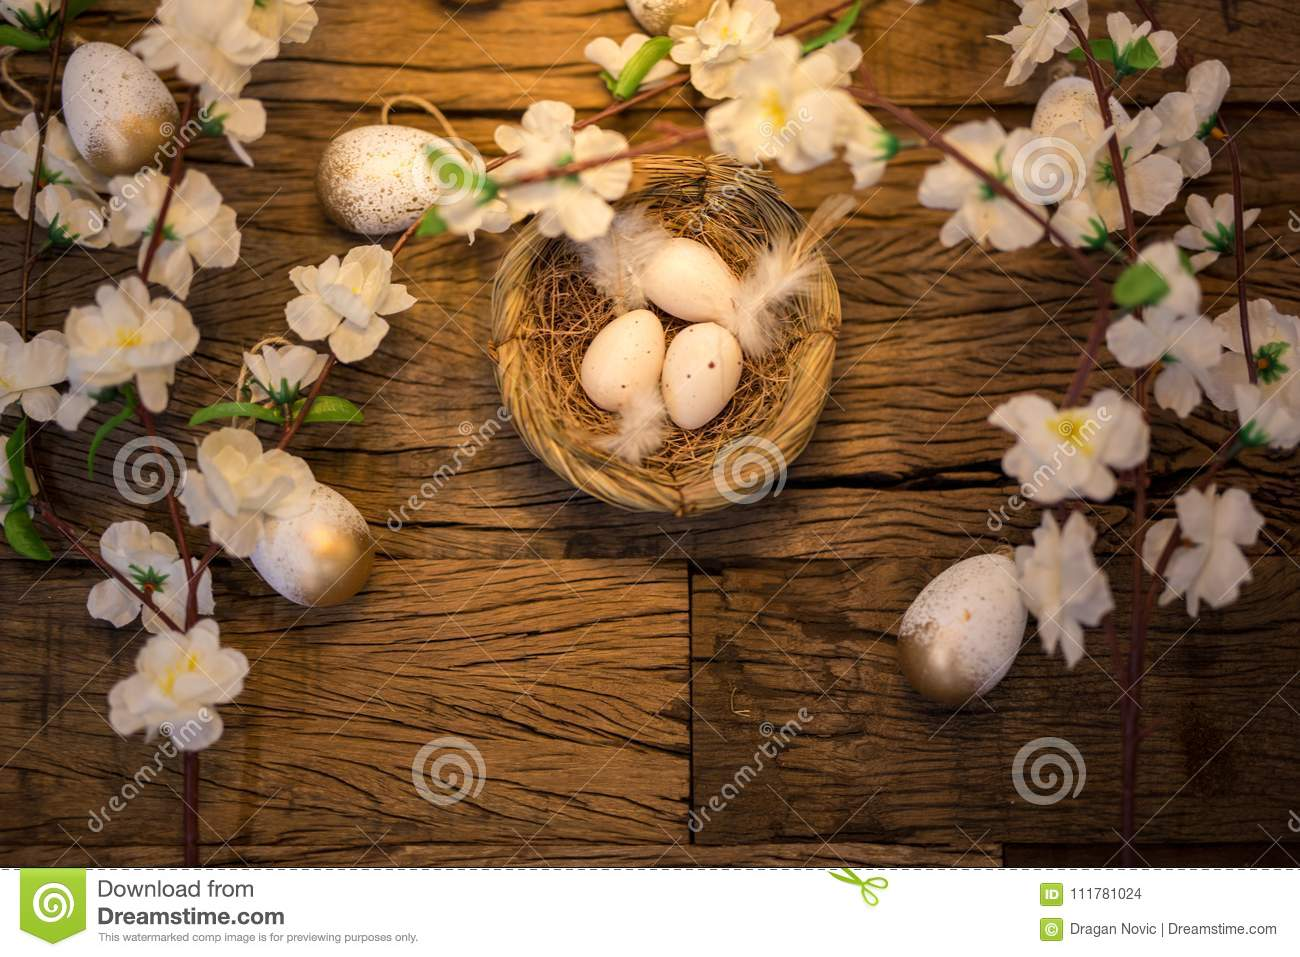 Quail eggs in a birds nest on a rustic wooden background